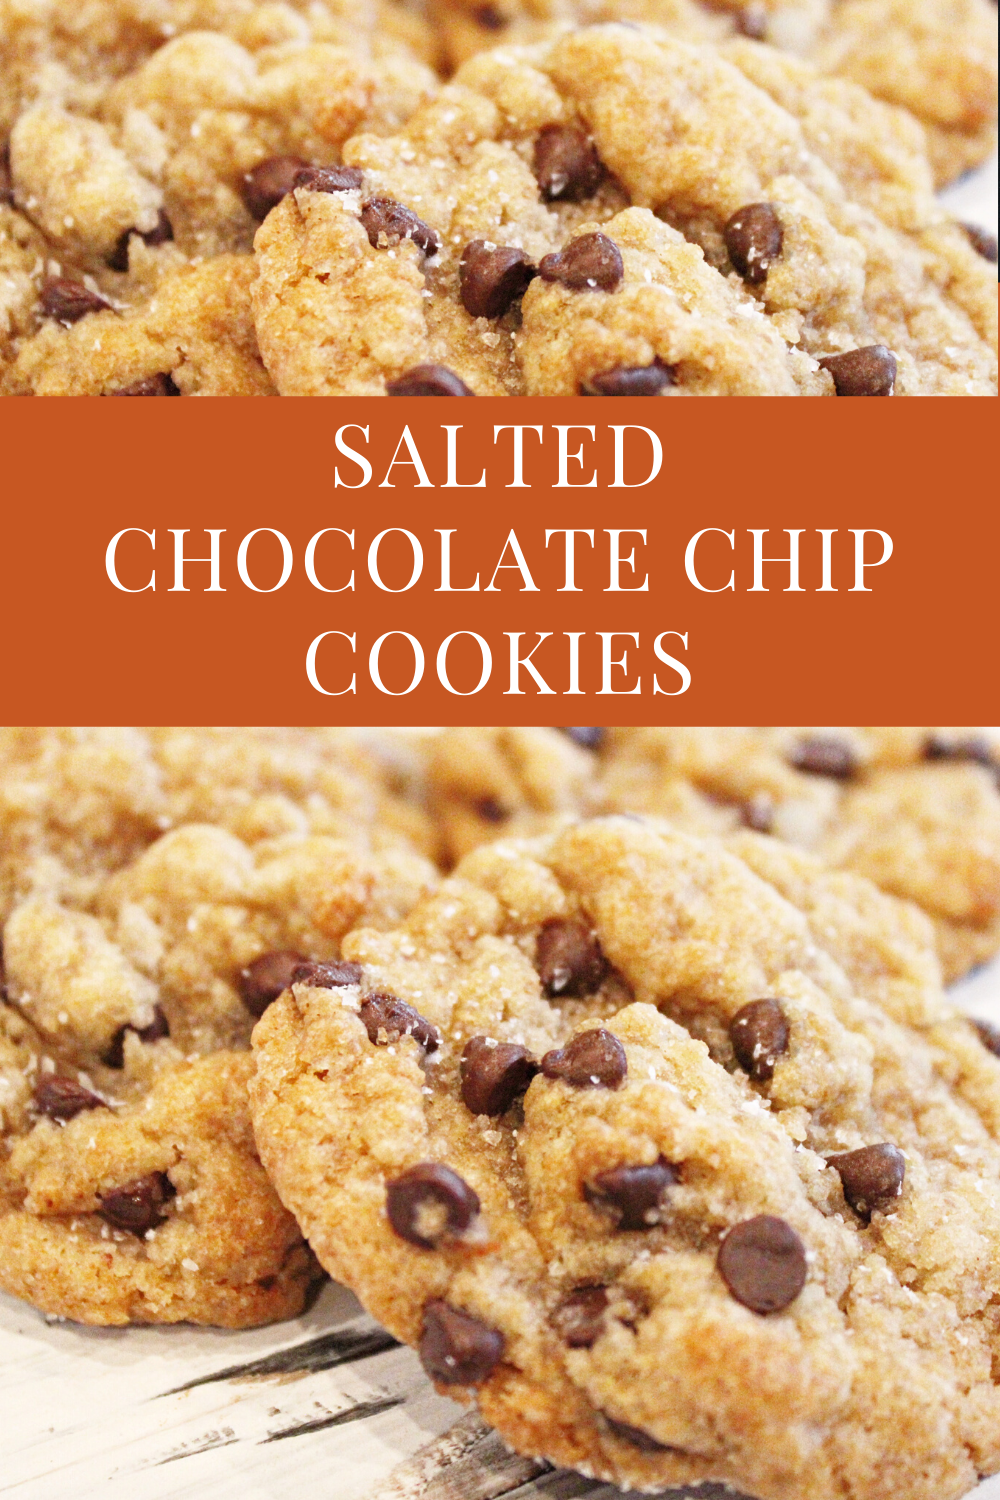 Vegan Salted Chocolate Chip Cookies - Soft and chewy, with just the right amount of sweetness and a sprinkling of sea salt as they come out of the oven. via @thiswifecooks